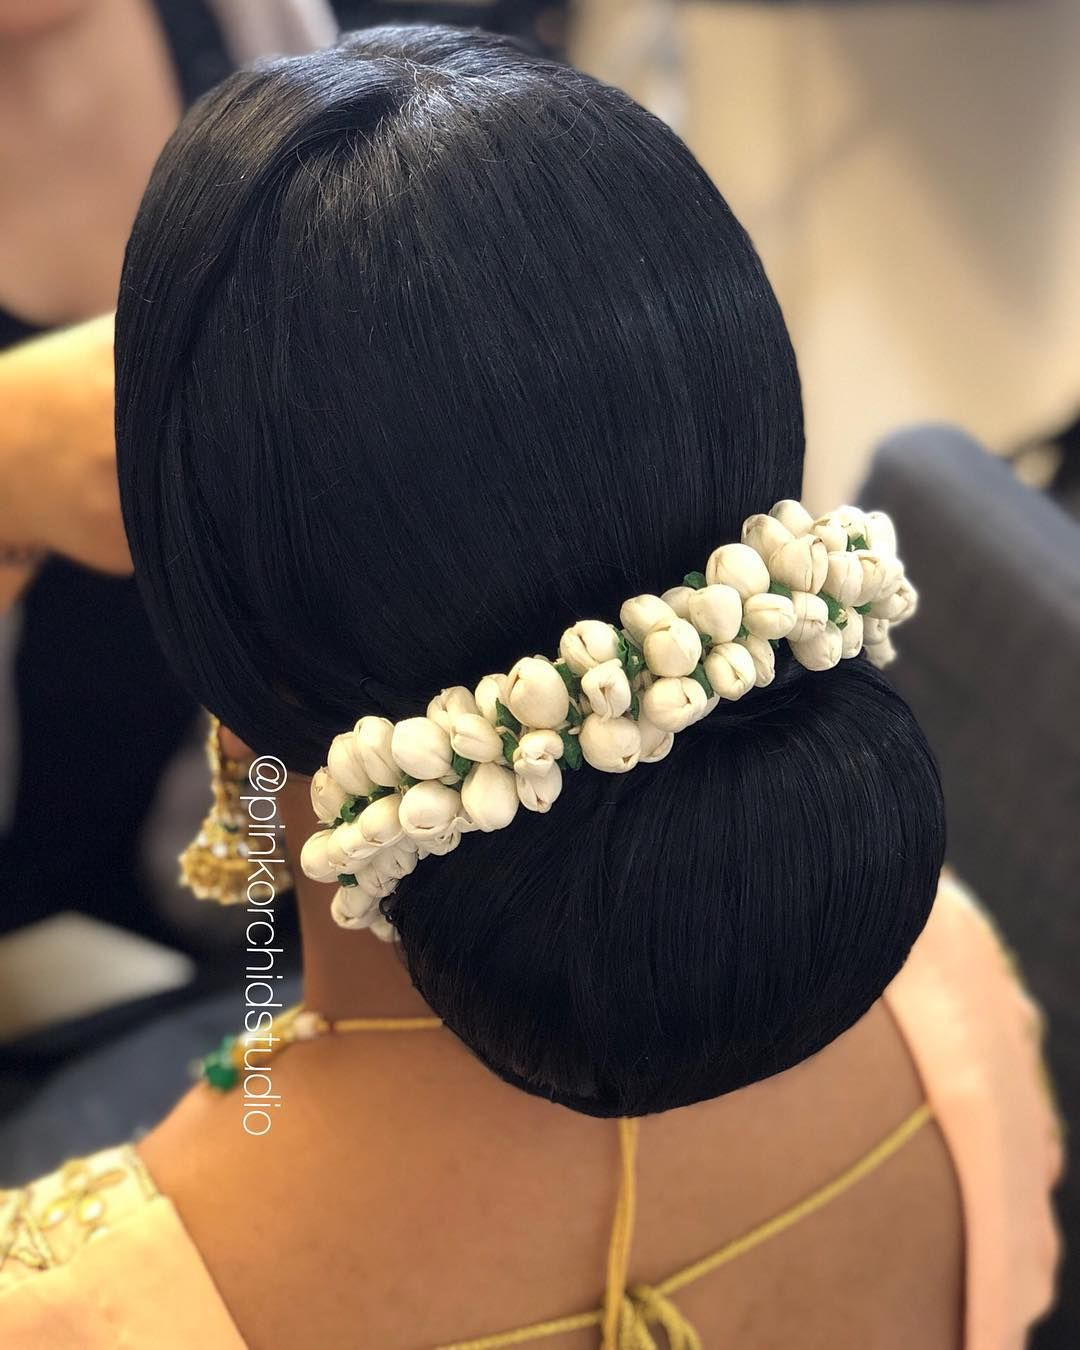 Hairstyle For Brothers Wedding: Client Ruby Glammed For Her Brothers Wedding. Artist